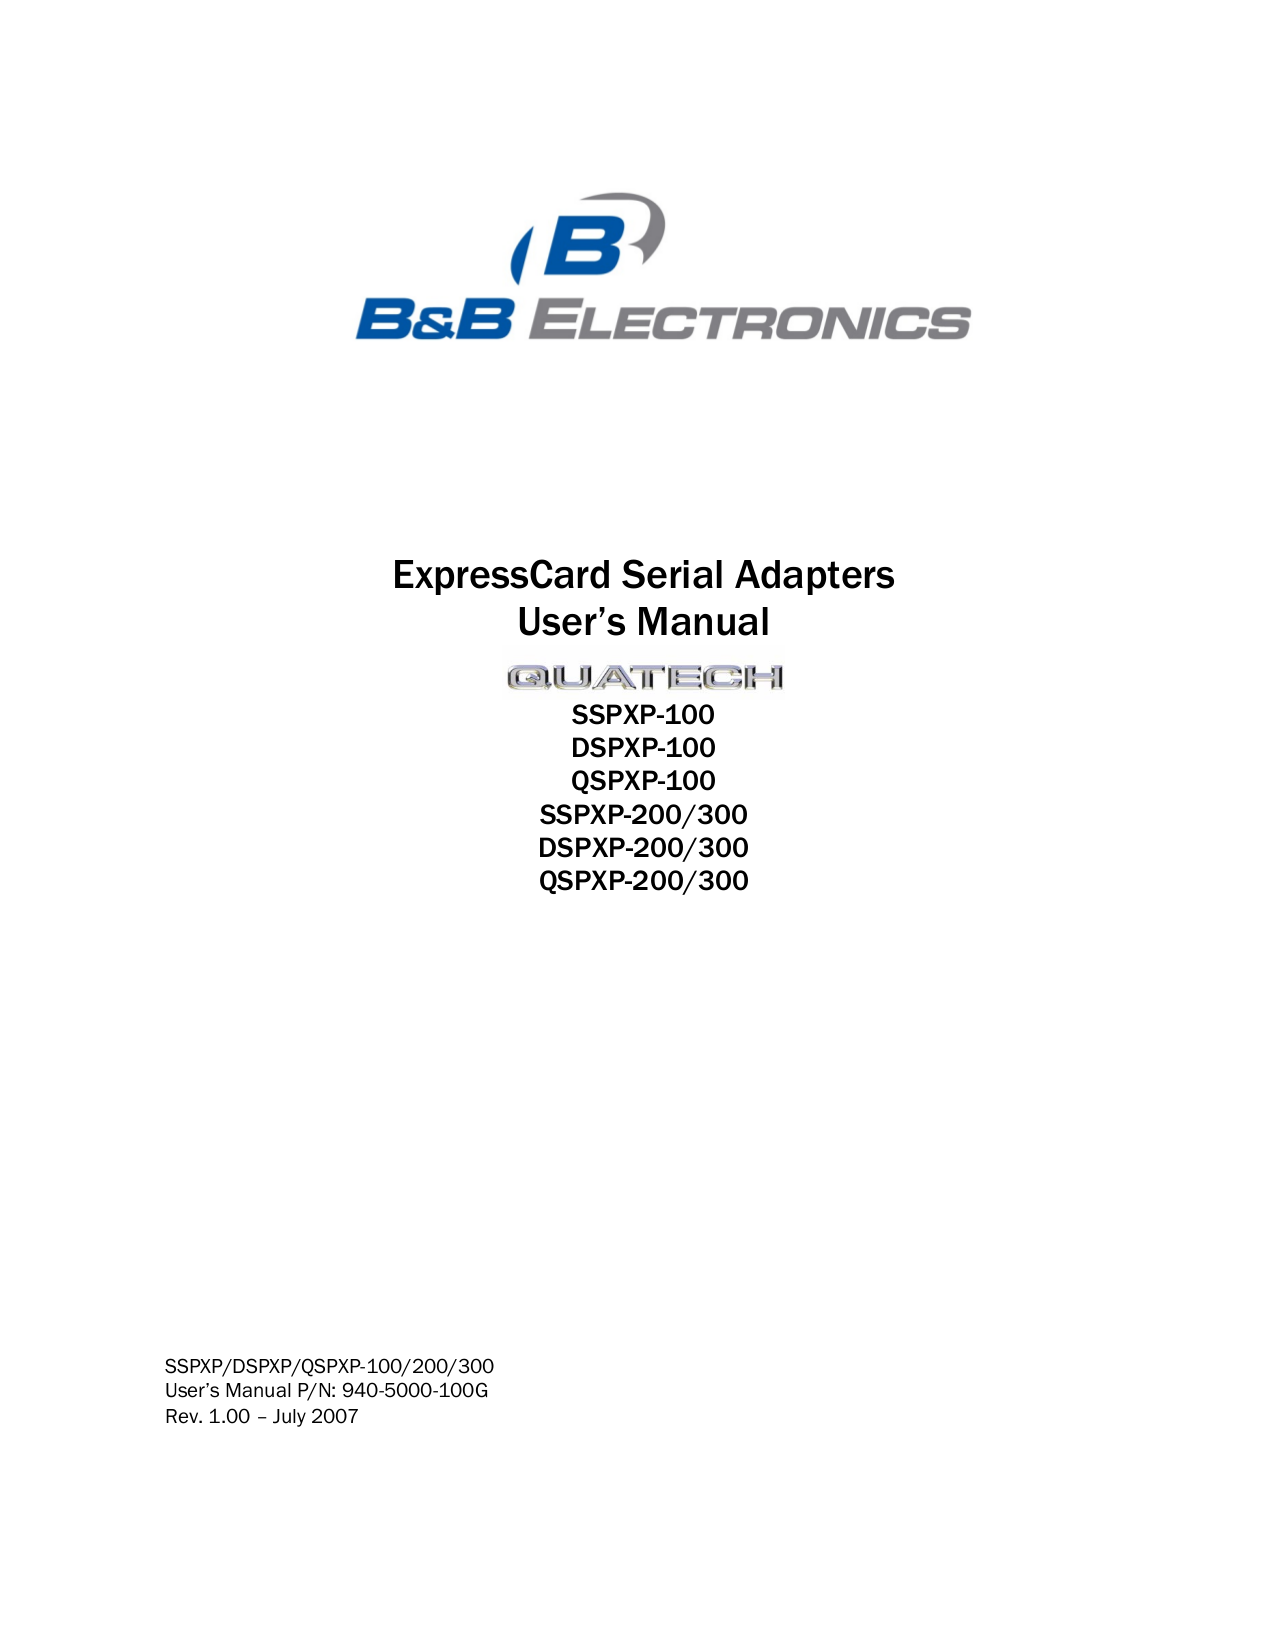 pdf for Quatech Other DSPXP-100 PCI Express Devices manual